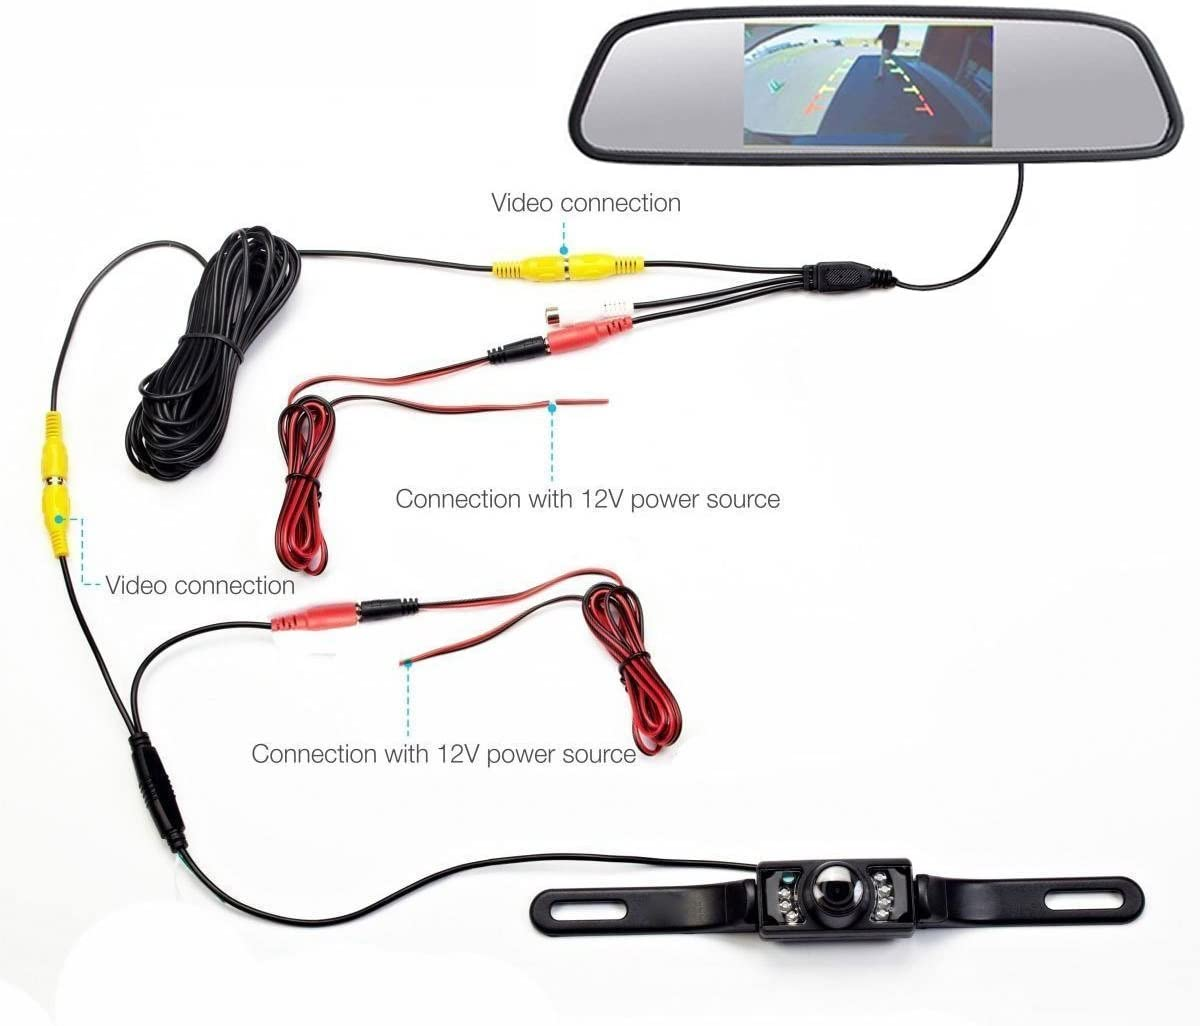 Waterproof Backup Camera and Monitor kit, 4.3inch Car Tft-LCD Mirror Monitor 7 LED Night Vision Rear View Camera Parking Reverse System Assembly 4.3 inch Mirror